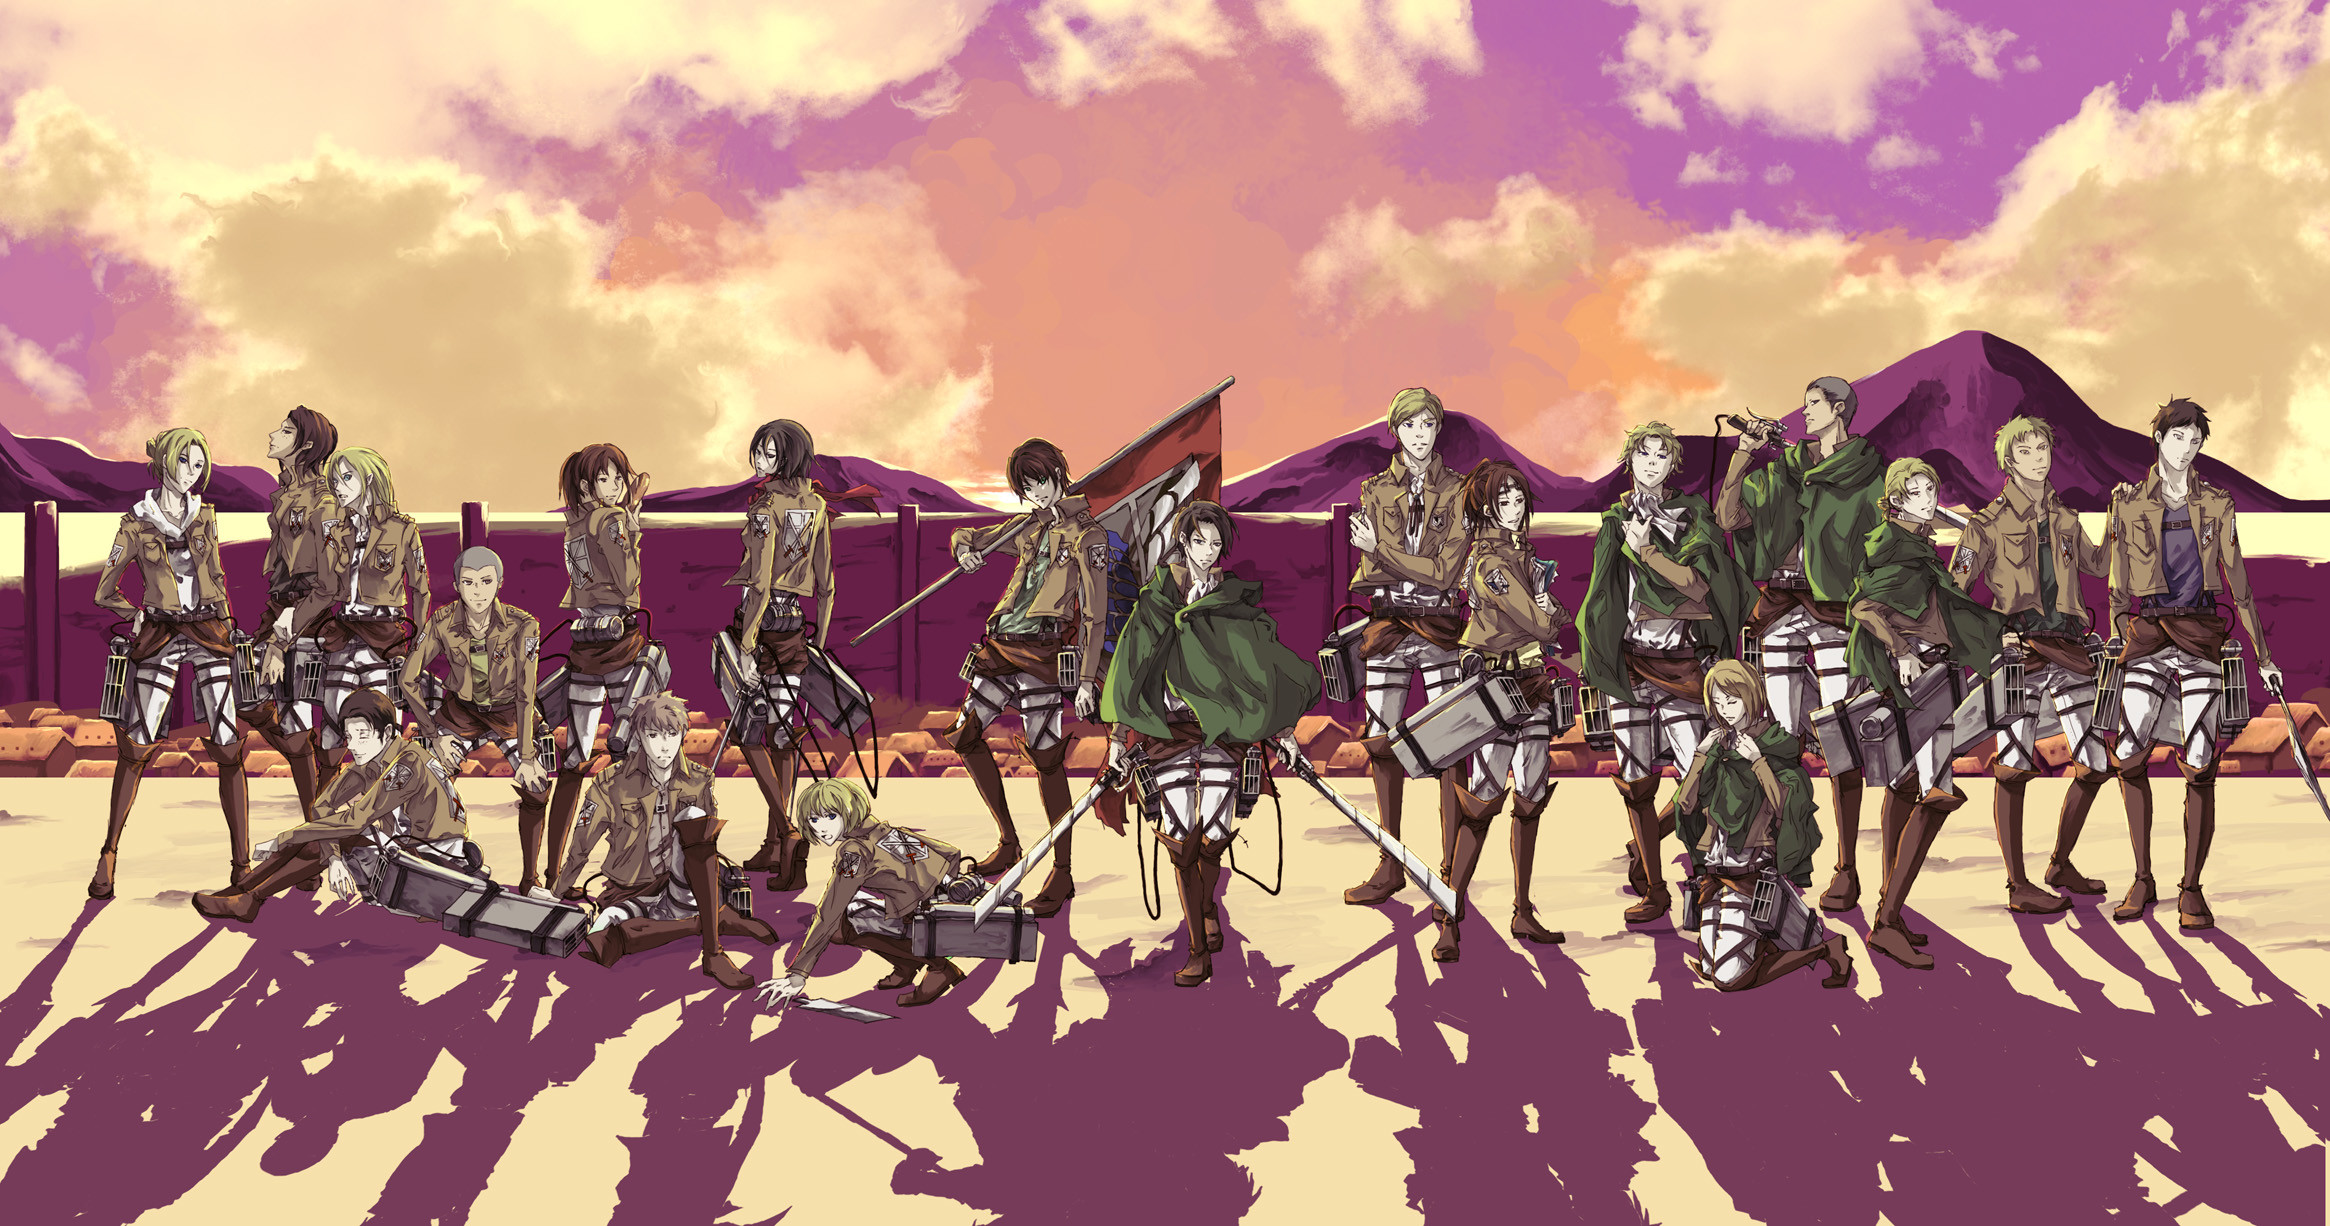 2330x1226 Shingeki-no-Kyojin-wallpaper-anime.jpg (JPEG-Grafik,